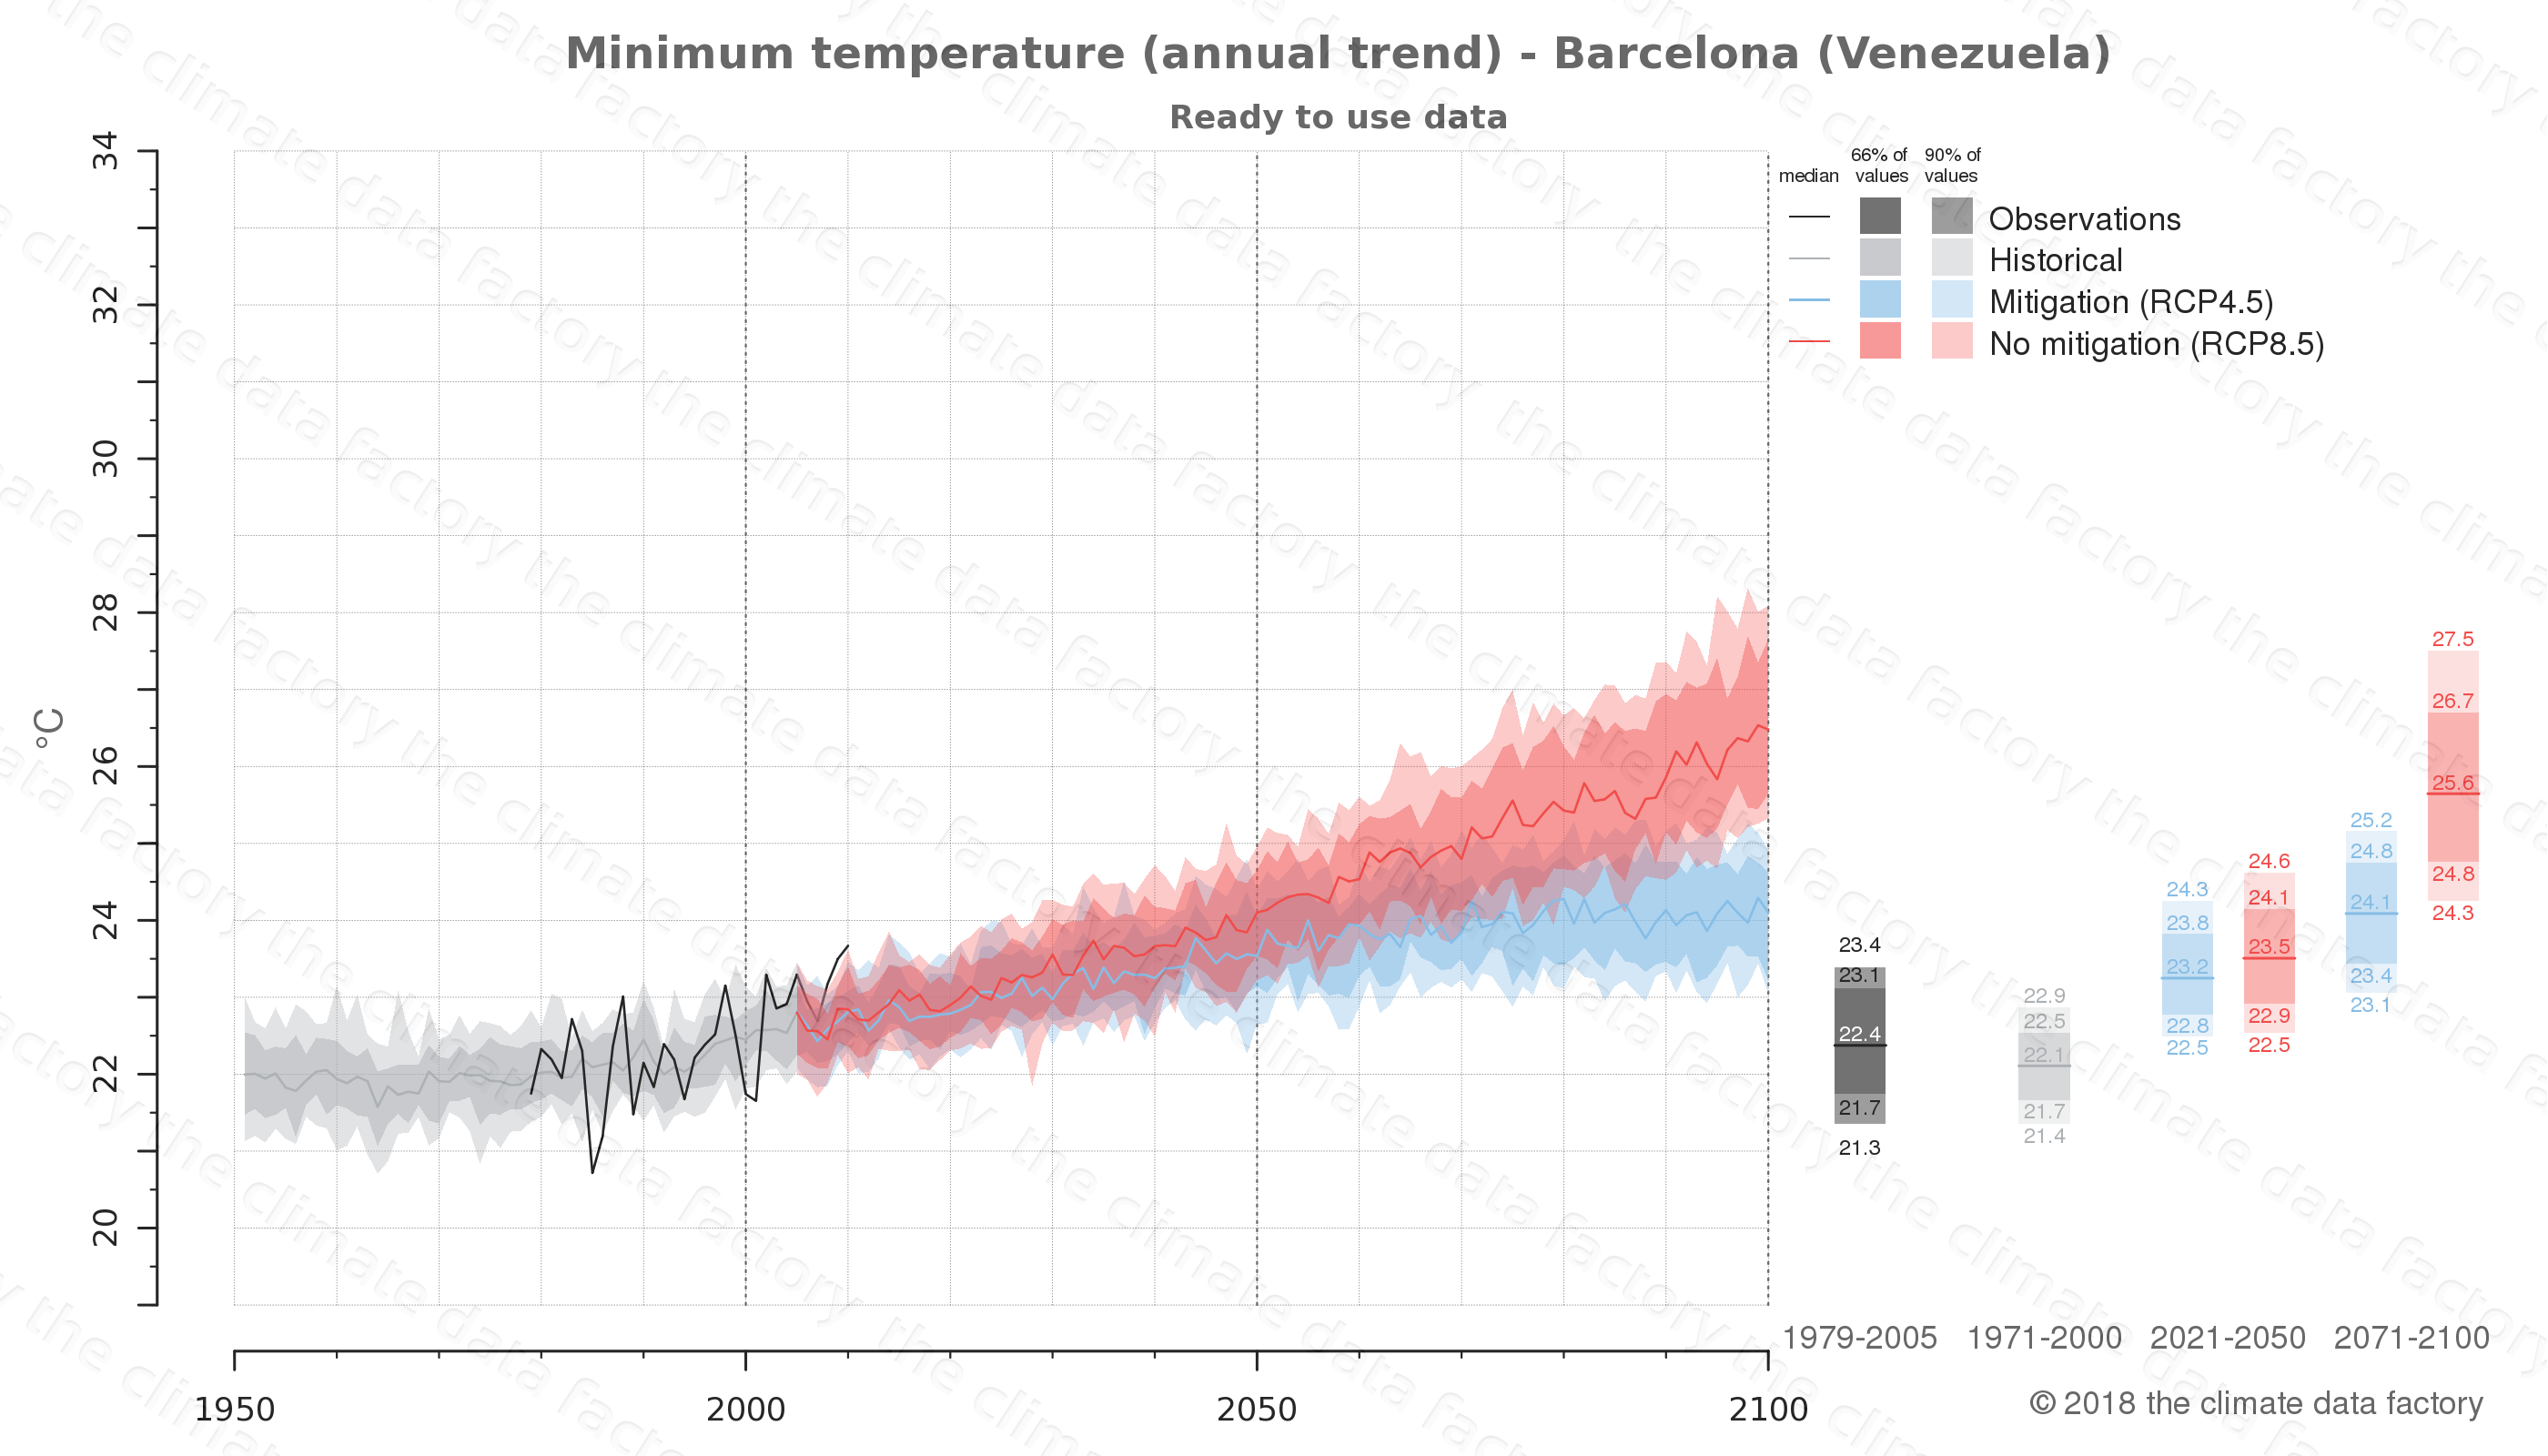 climate change data policy adaptation climate graph city data minimum-temperature barcelona venezuela